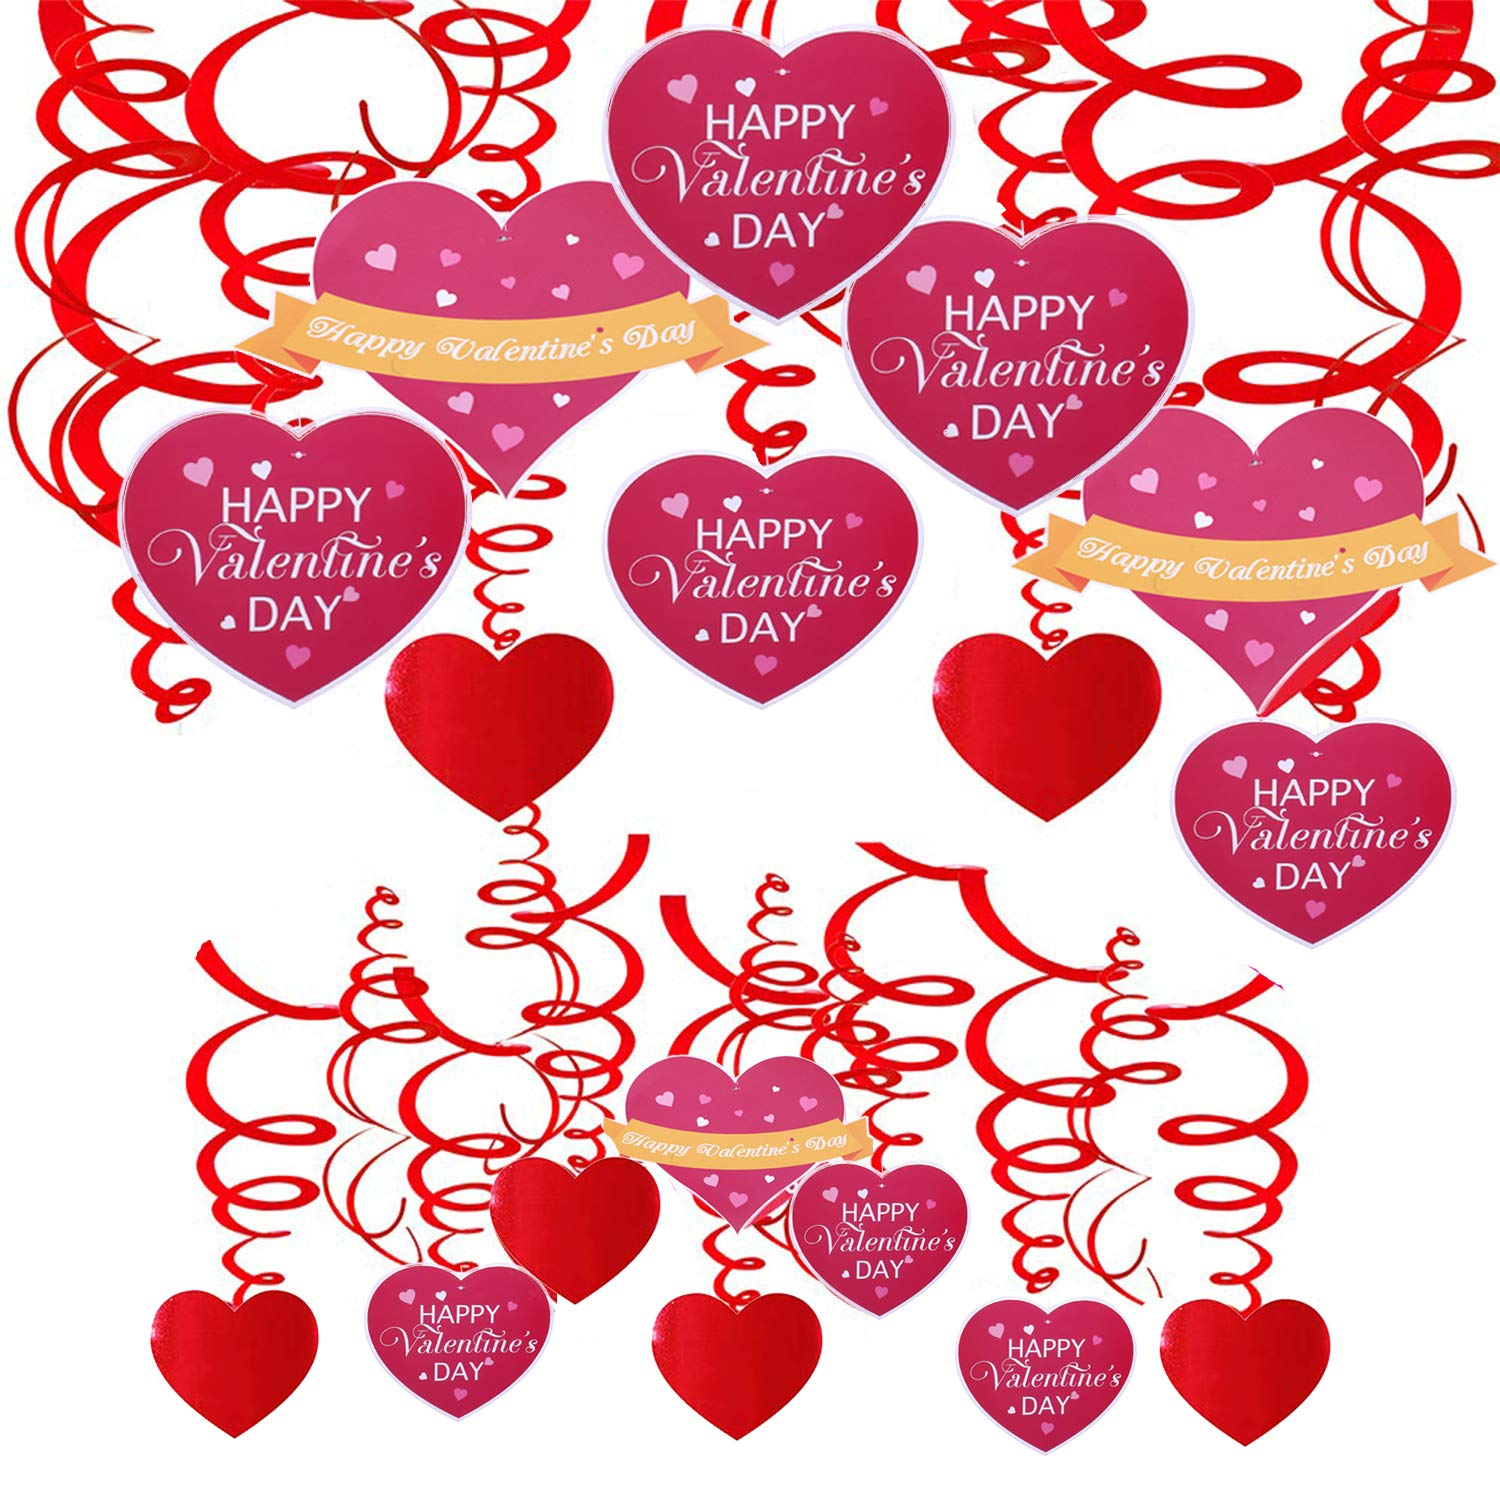 Tuoshei 30 Pieces Valentines Day Decorations Valentines Wall Decor Valentine Hanging Swirl Decorations for Home Party Dangling Ceiling Window Wall Decor Valentine Party Favor Supplies Accessories